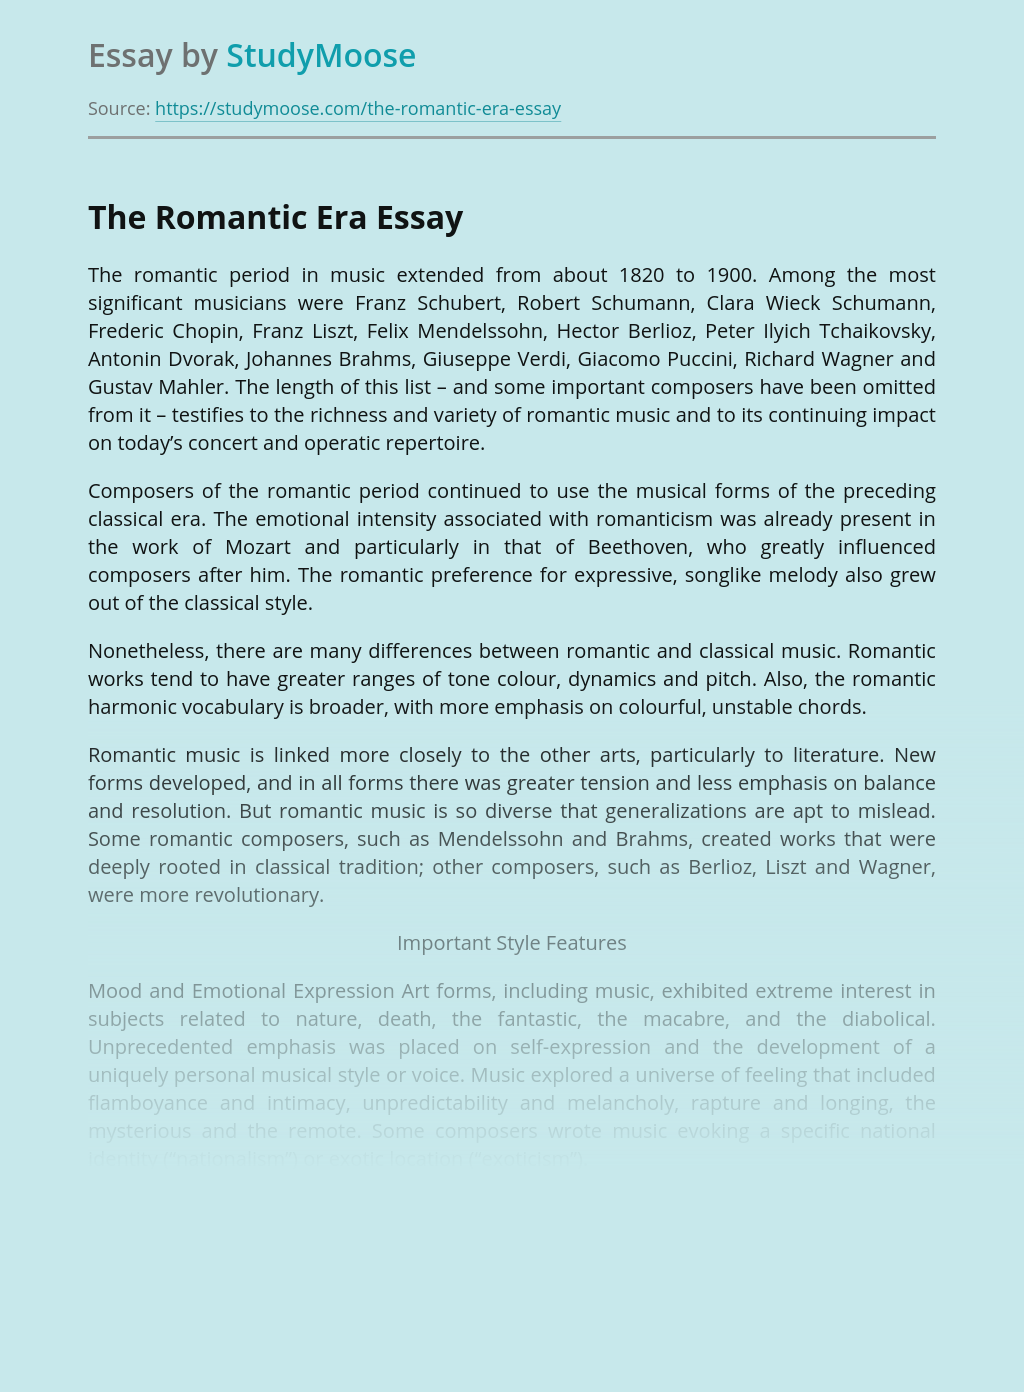 Romanticism in Art, Music and Literature